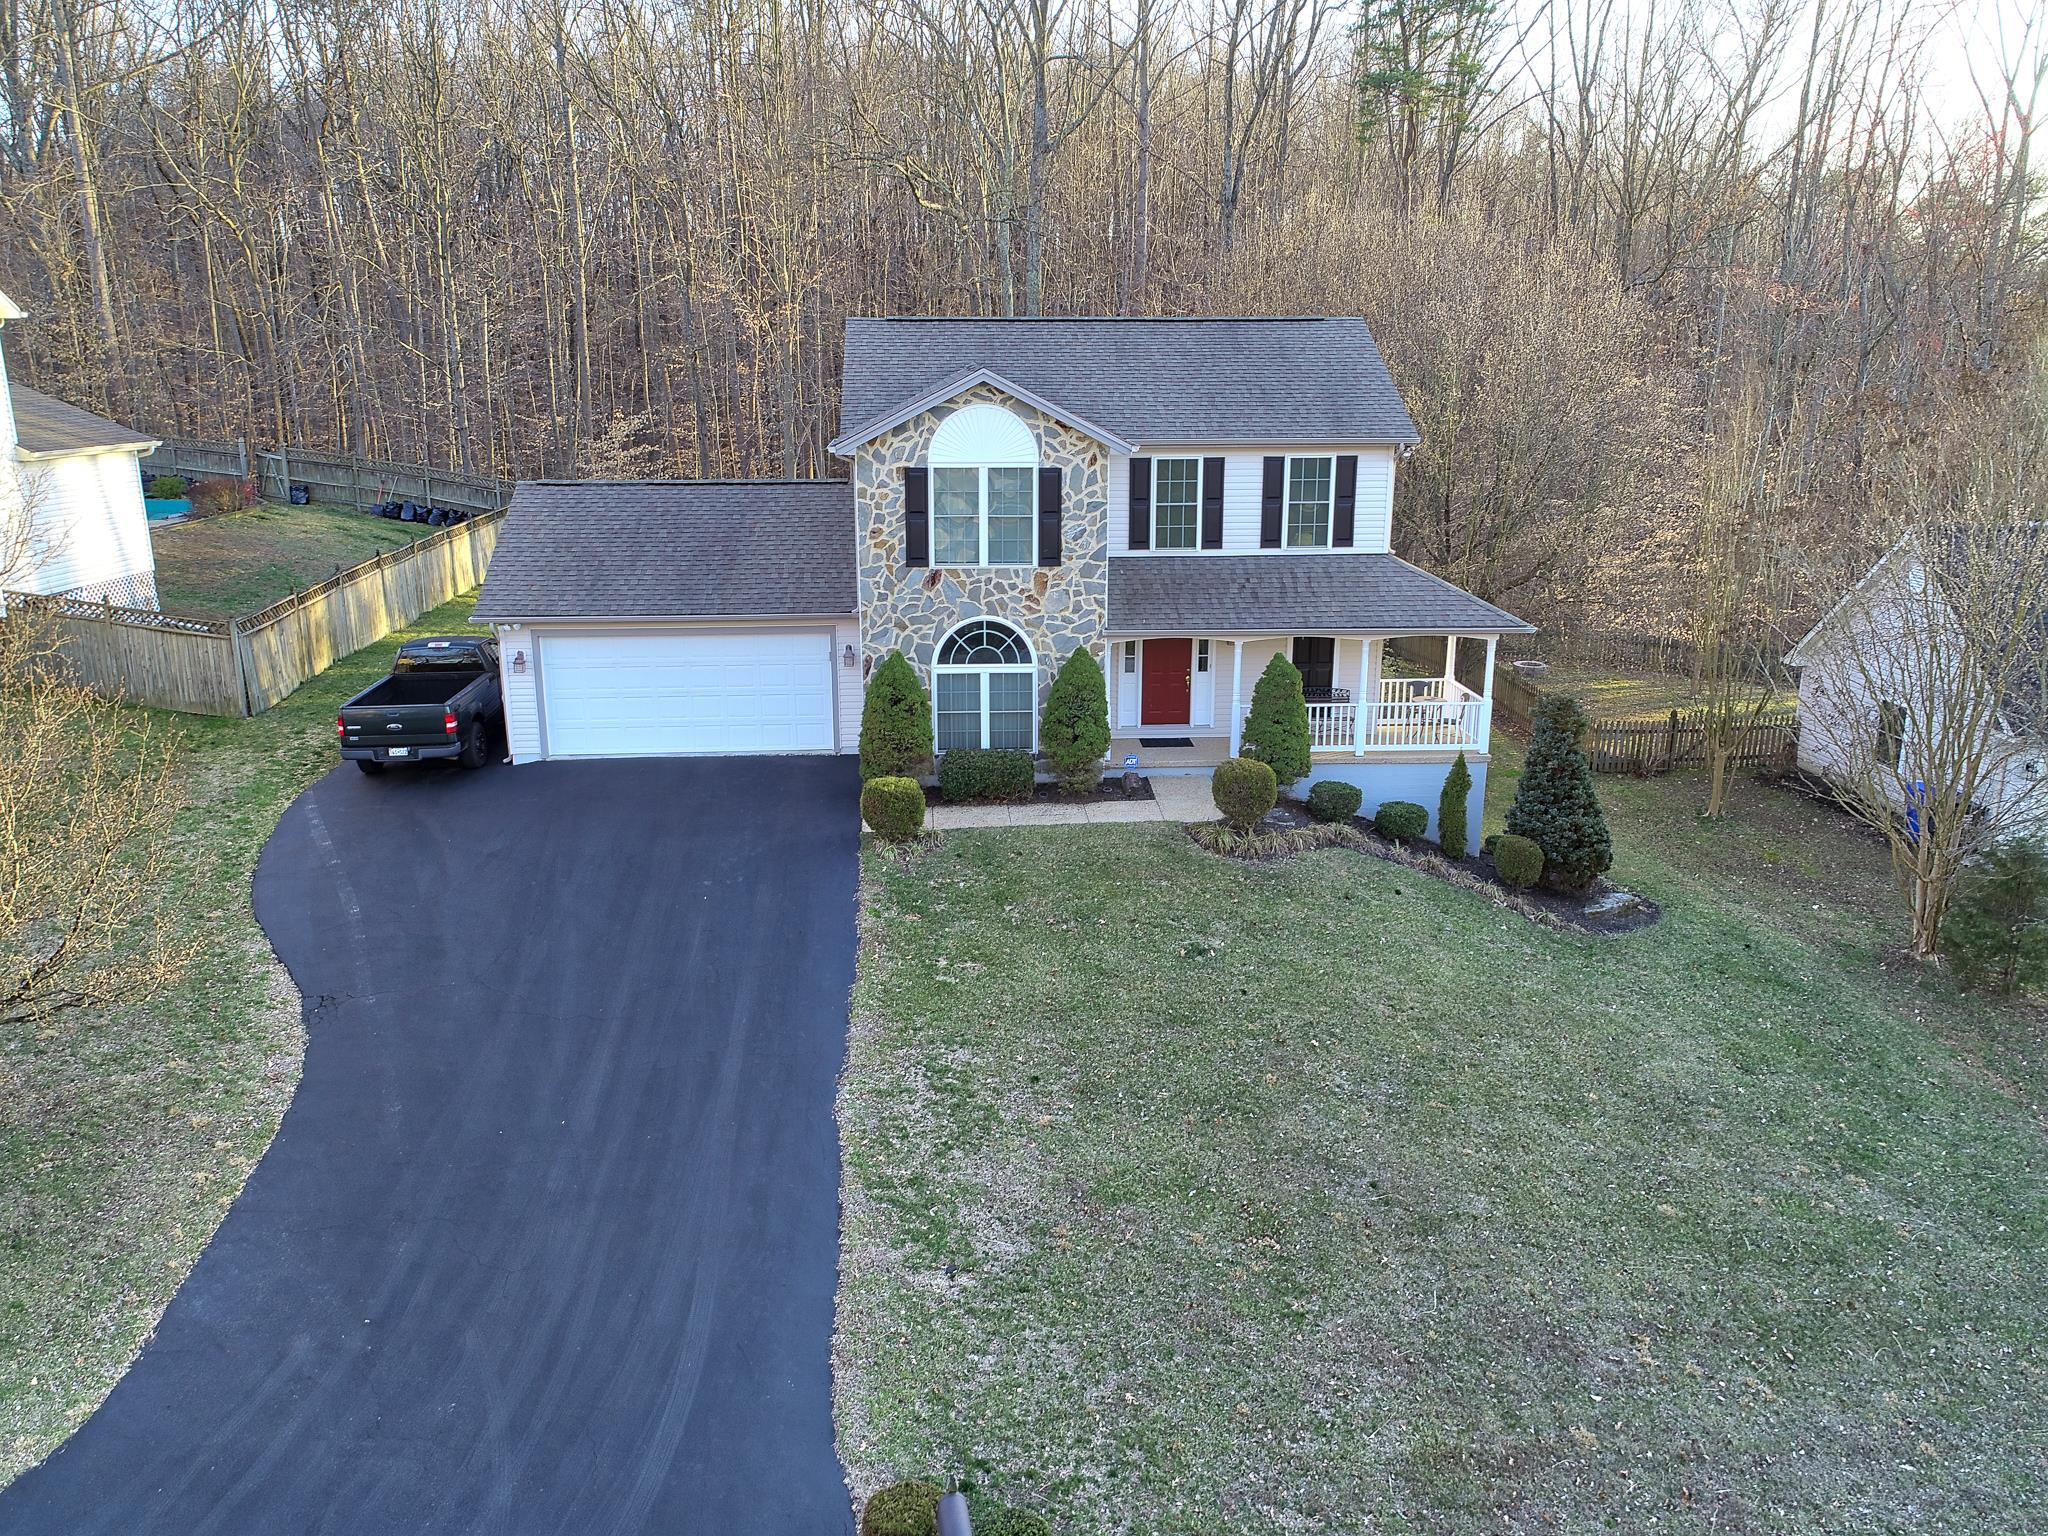 Waldorf Home for Sale, off of Bennsville Road, Near Friendship Estates, in Cartagena Community!  2849 Portobello Court is a Beautiful Single Family Home for Sale in Charles County!  Listed by Marie Lally, Realtor with O'Brien Realty of Southern Maryland!  The Best of Southern MD!